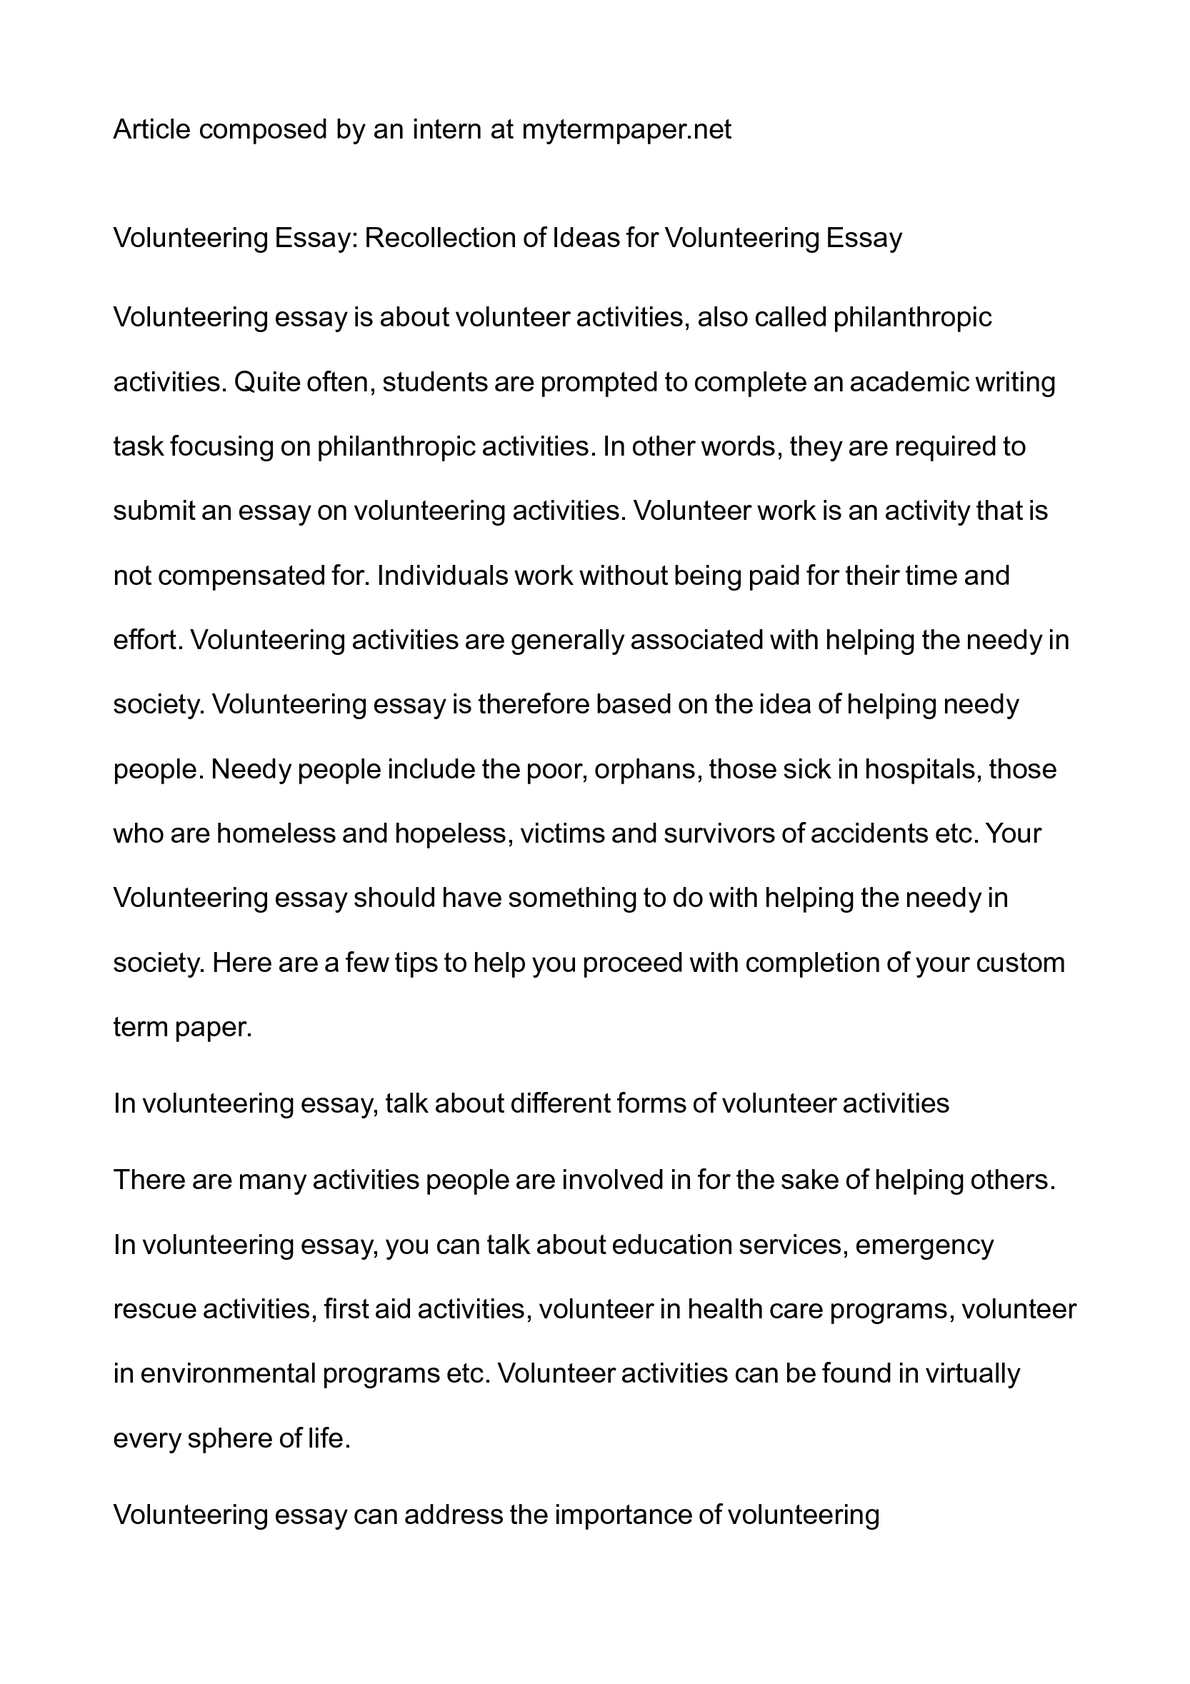 Volunteering essay